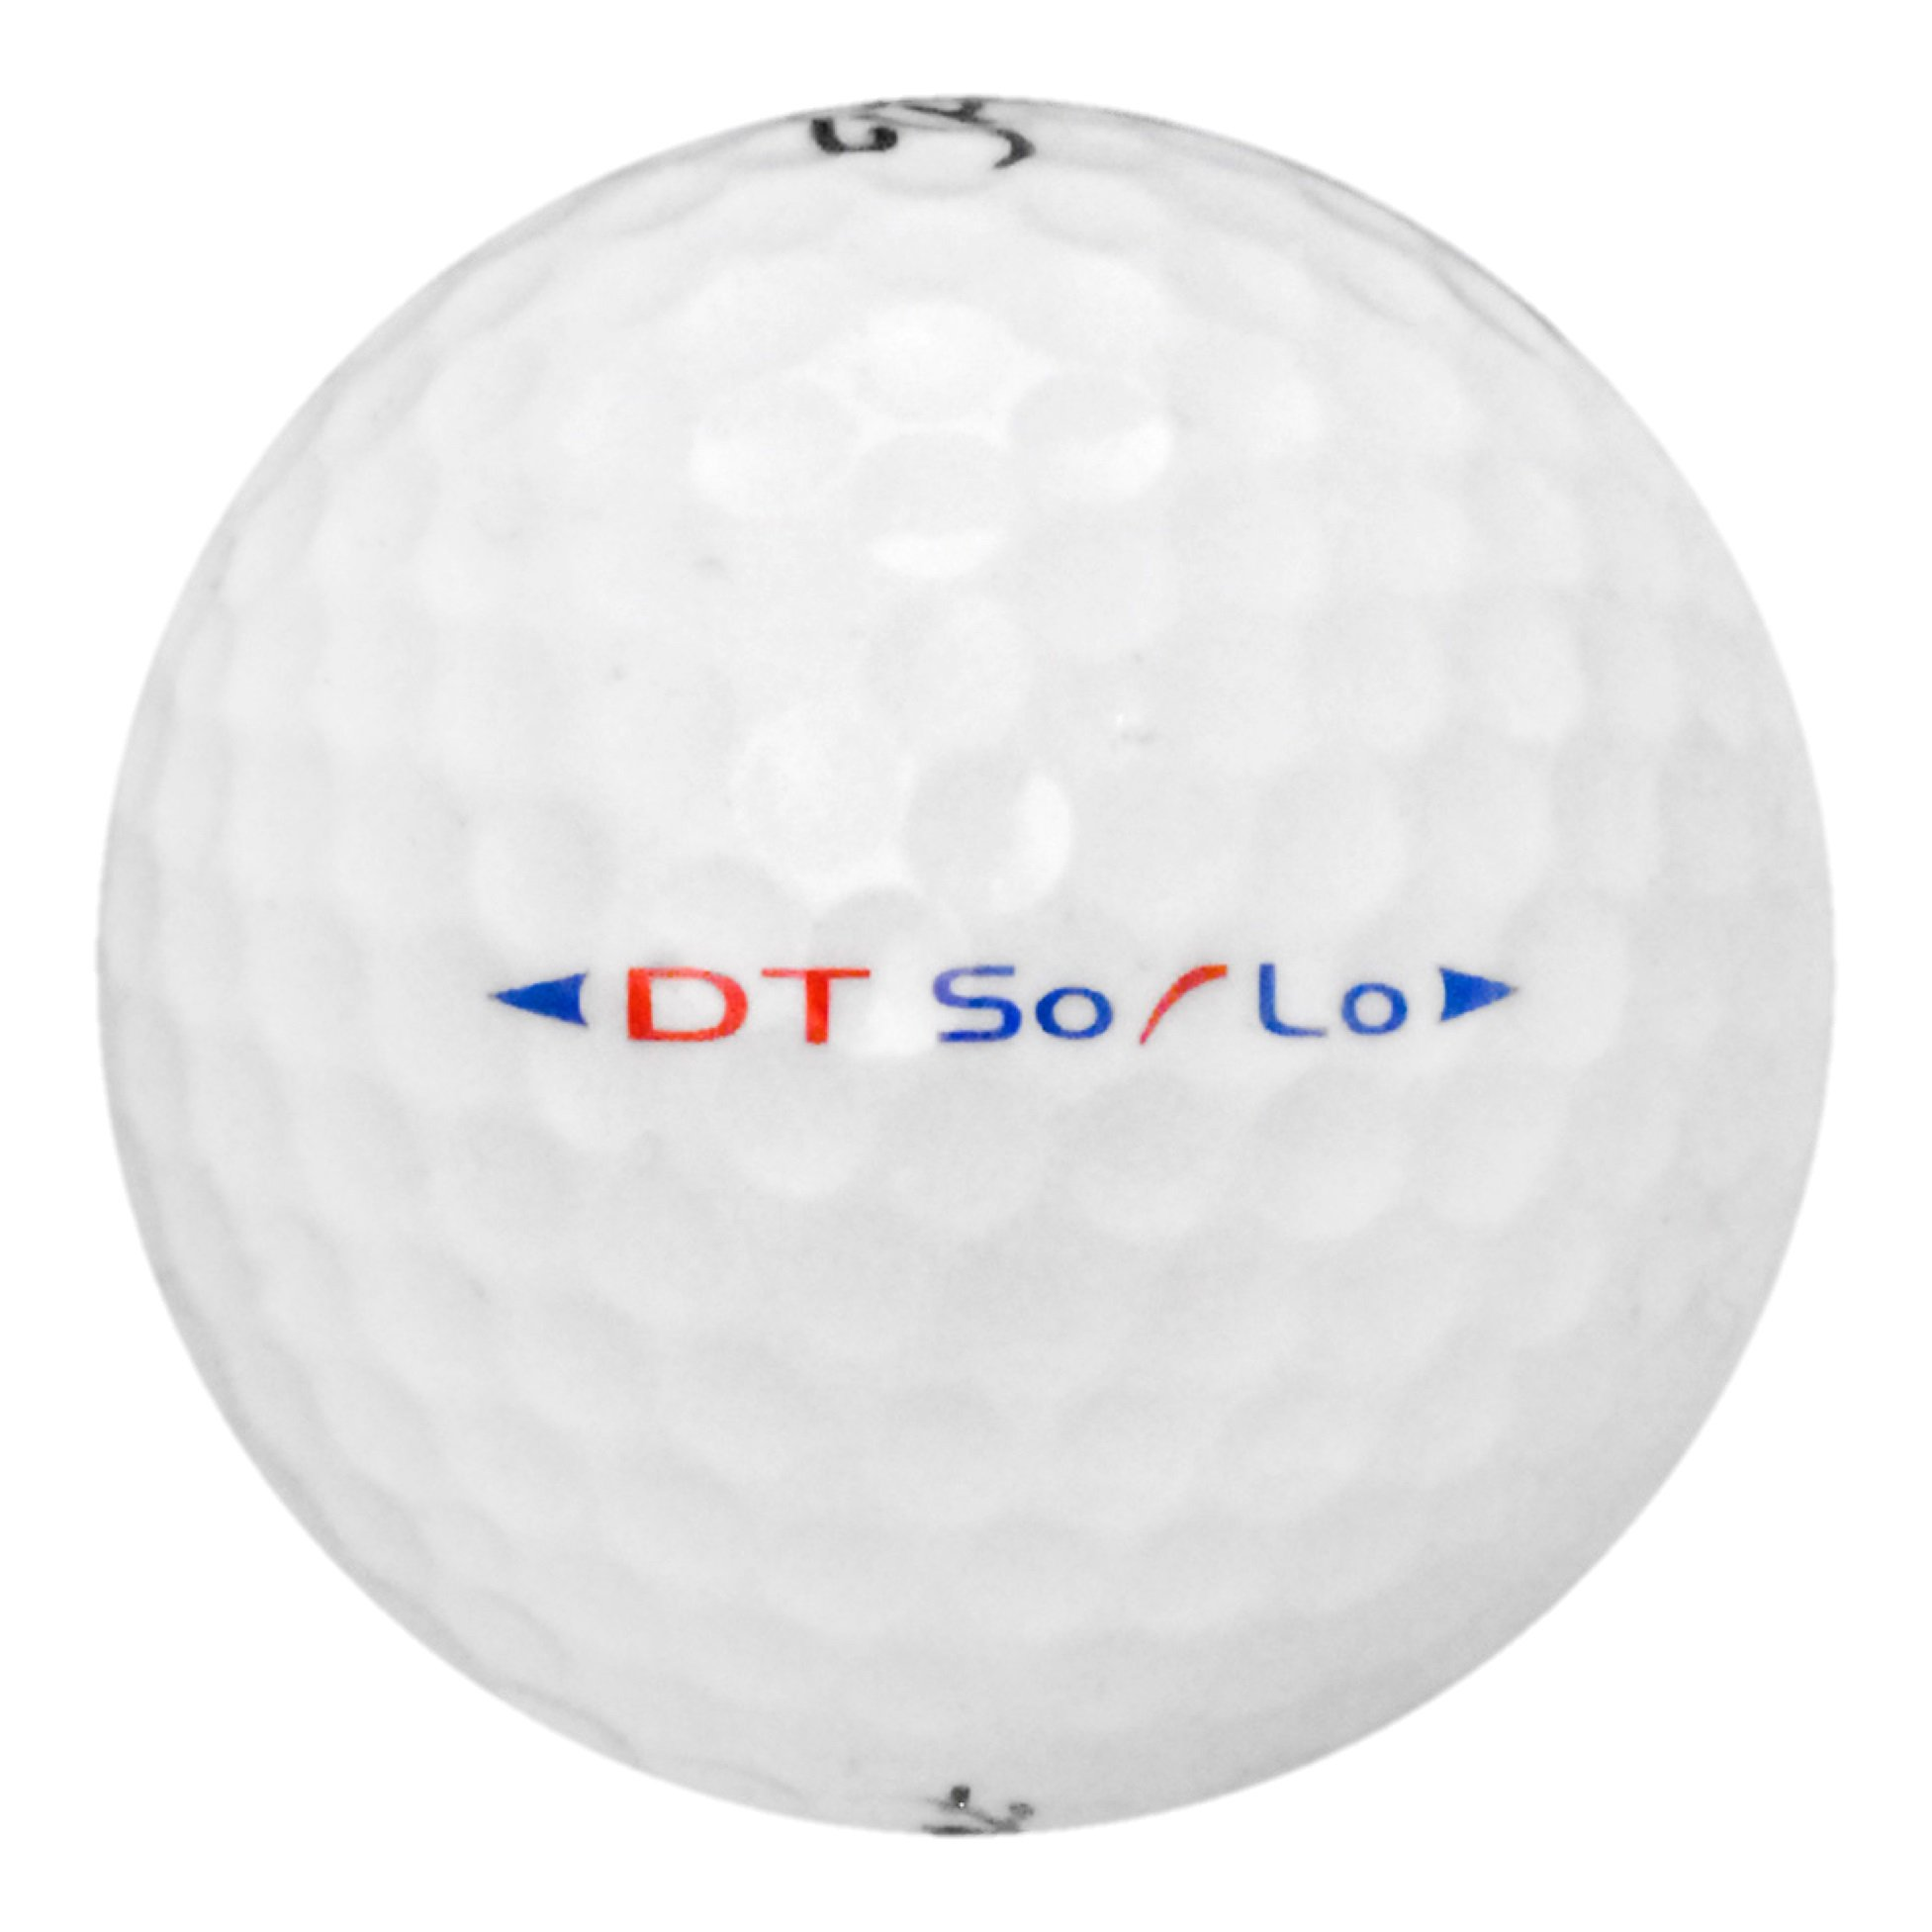 TITLEIST DT SOLO-NEAR MINT AAAA GRADE-RECYCLED USED GOLF BALLS-144 PACK